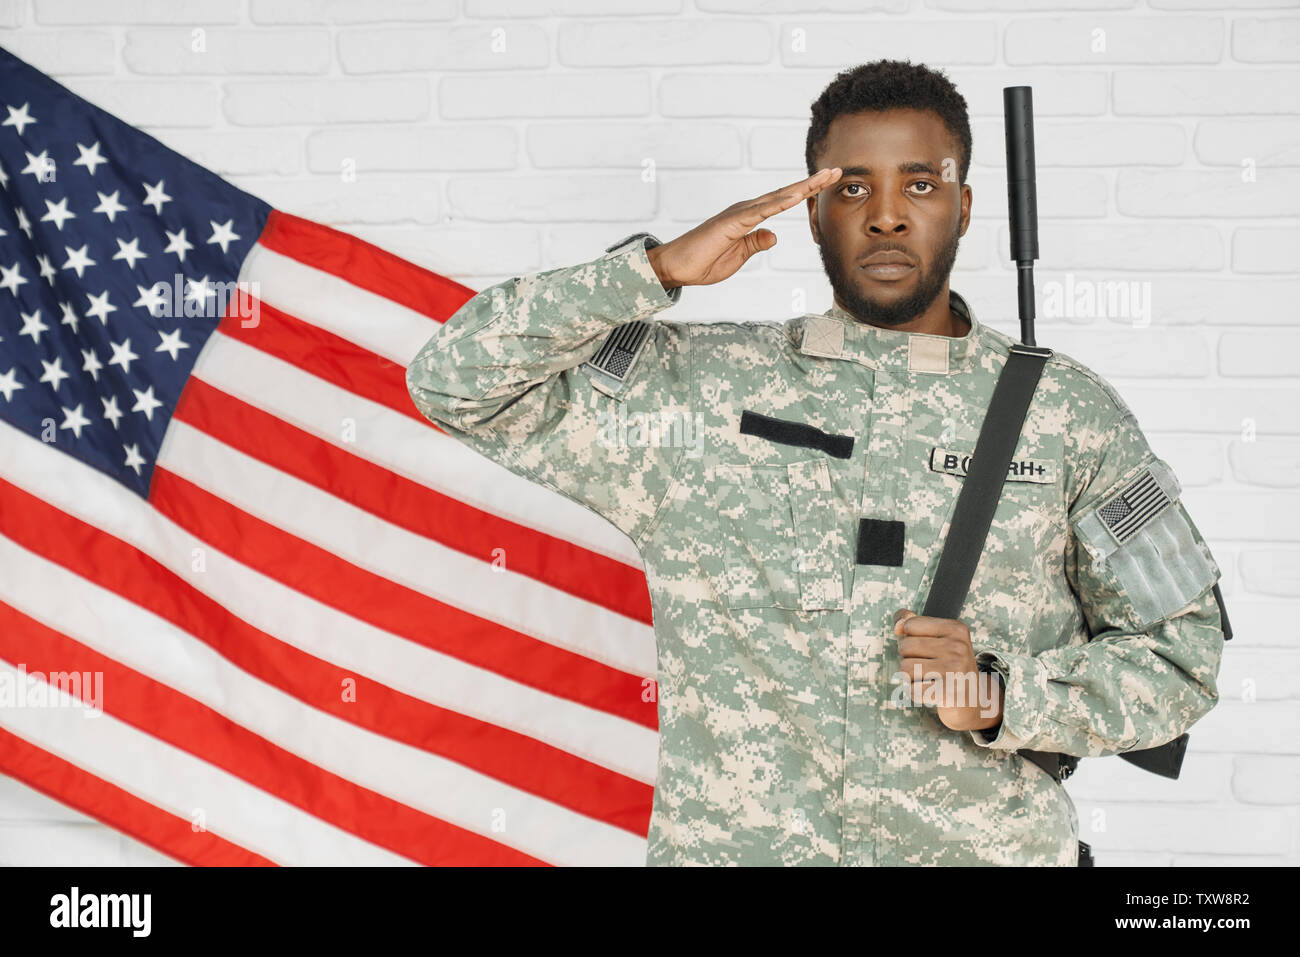 Young serious ranker standing near American flag and holding hand near head, ready for army. Soldier wearing green uniform holding weapon on back and looking at camera. Concept of preparing for army. - Stock Image